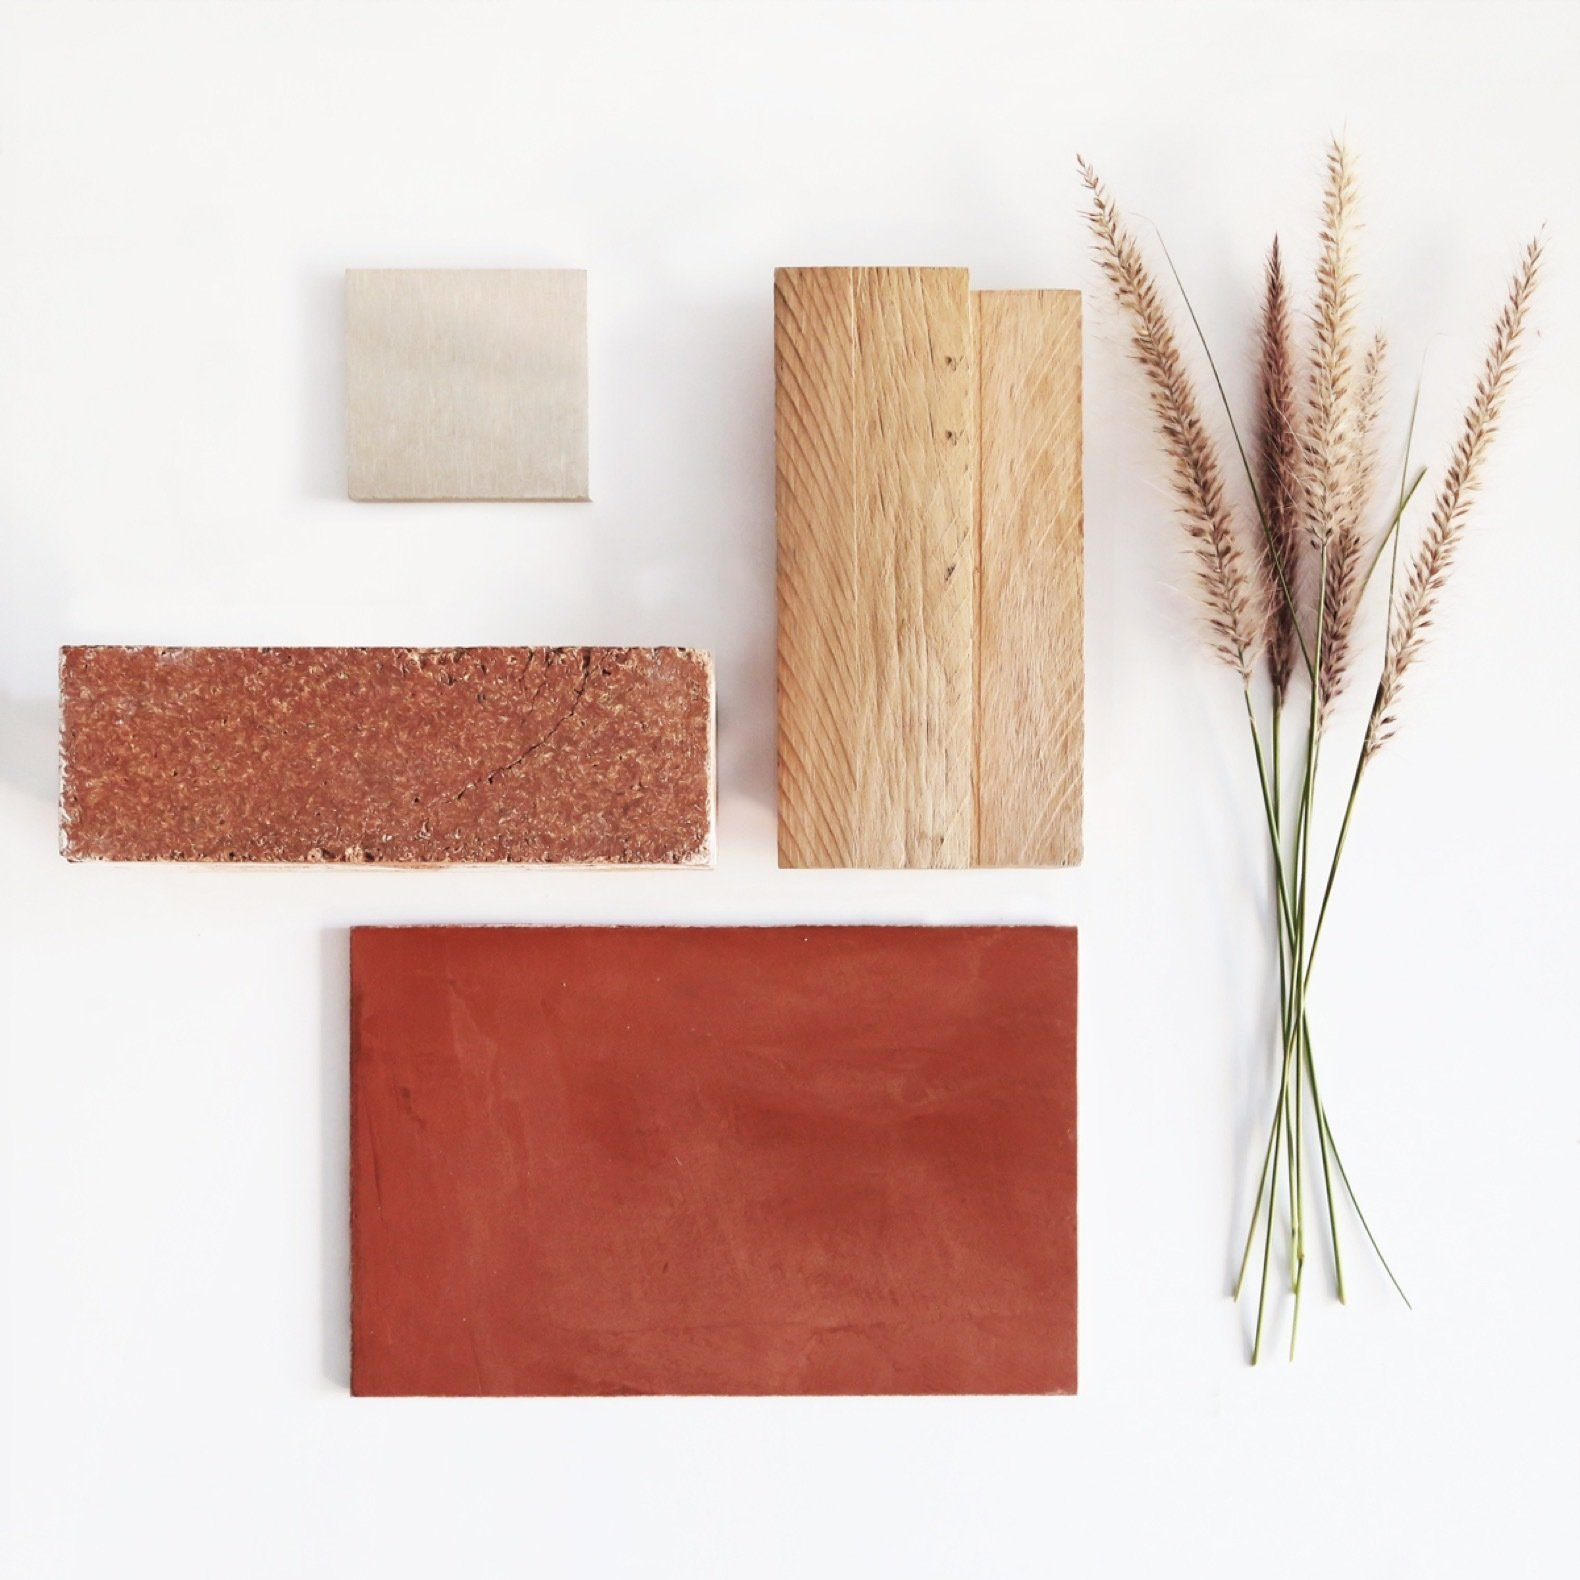 Three Piece House material mood board